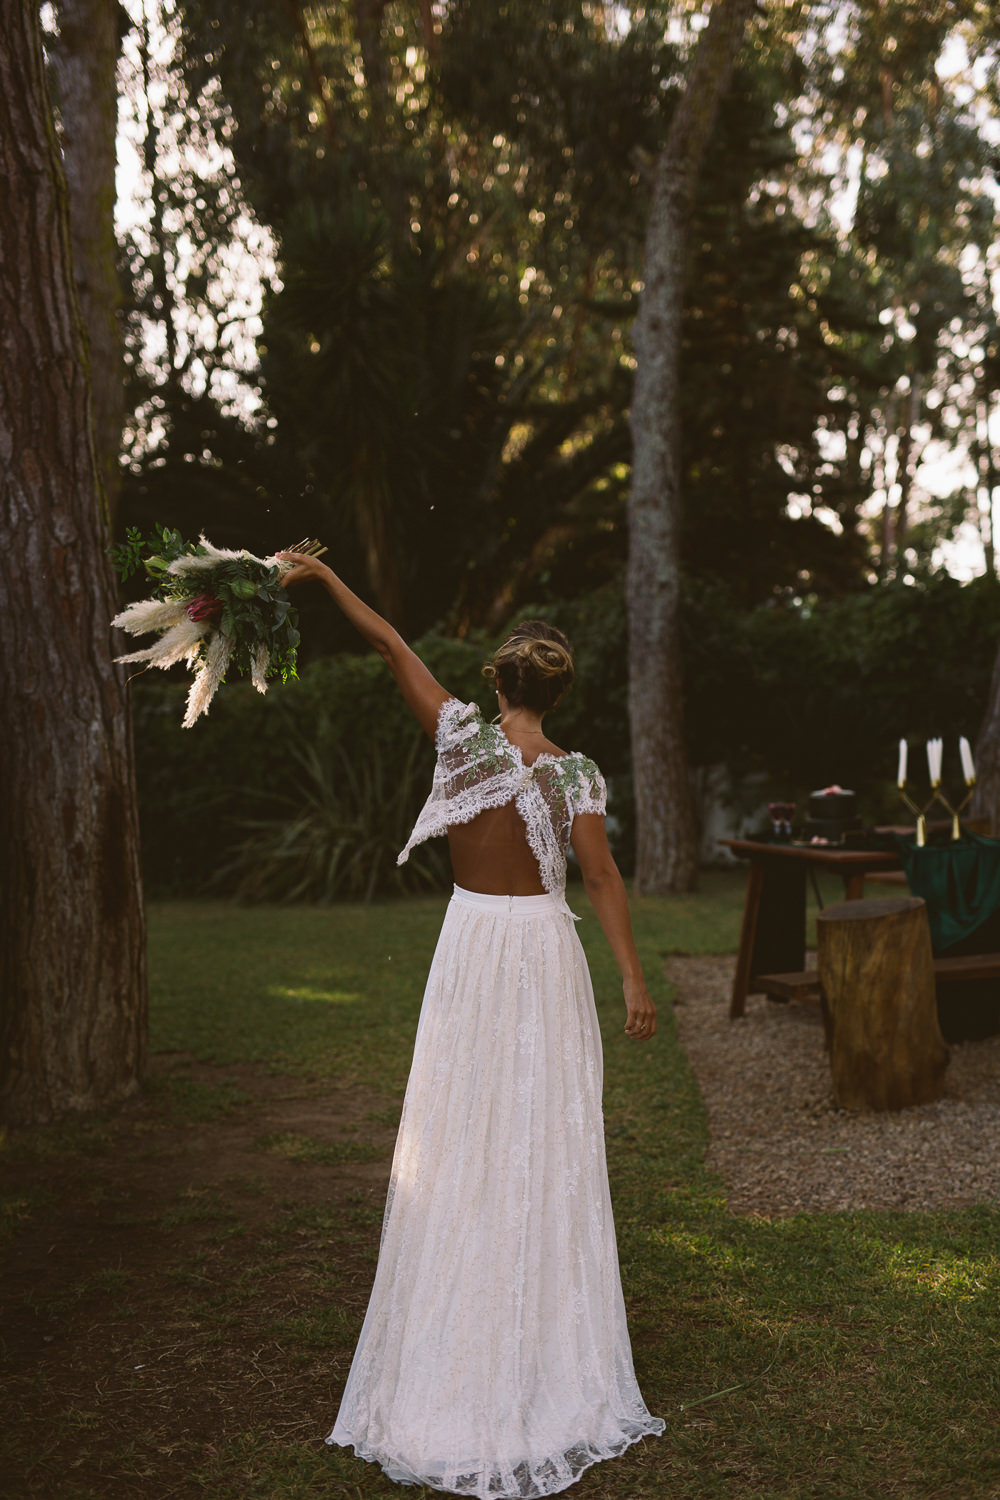 Dress Gown Bride Bridal Separates Skirt Top Open Back Lace Botanical Dark Green Velvet Pampas Grass Wedding Ideas Bárbara Araújo Photography